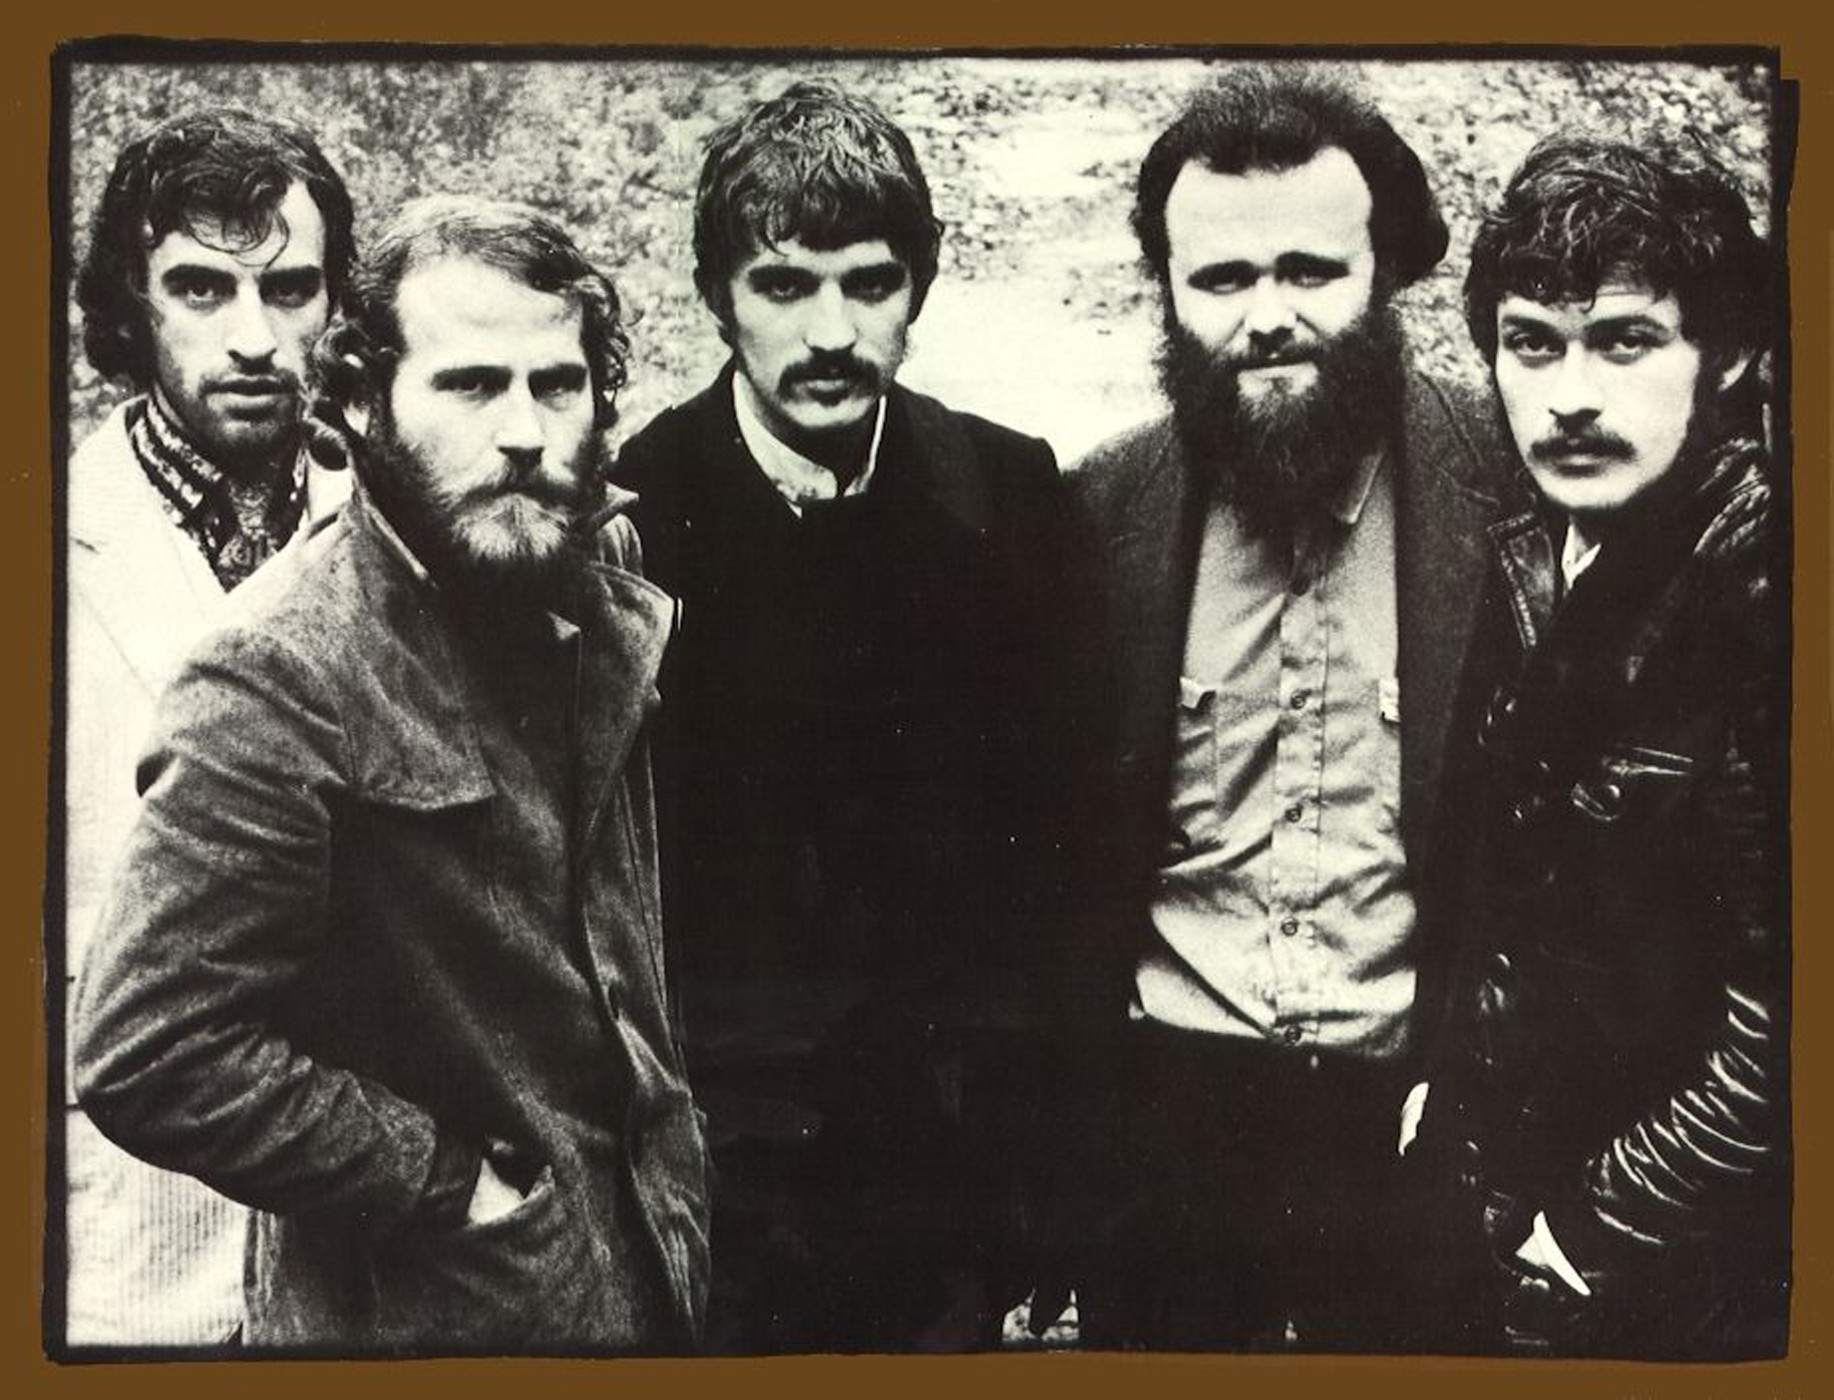 The Band (Levon Helm second from left)